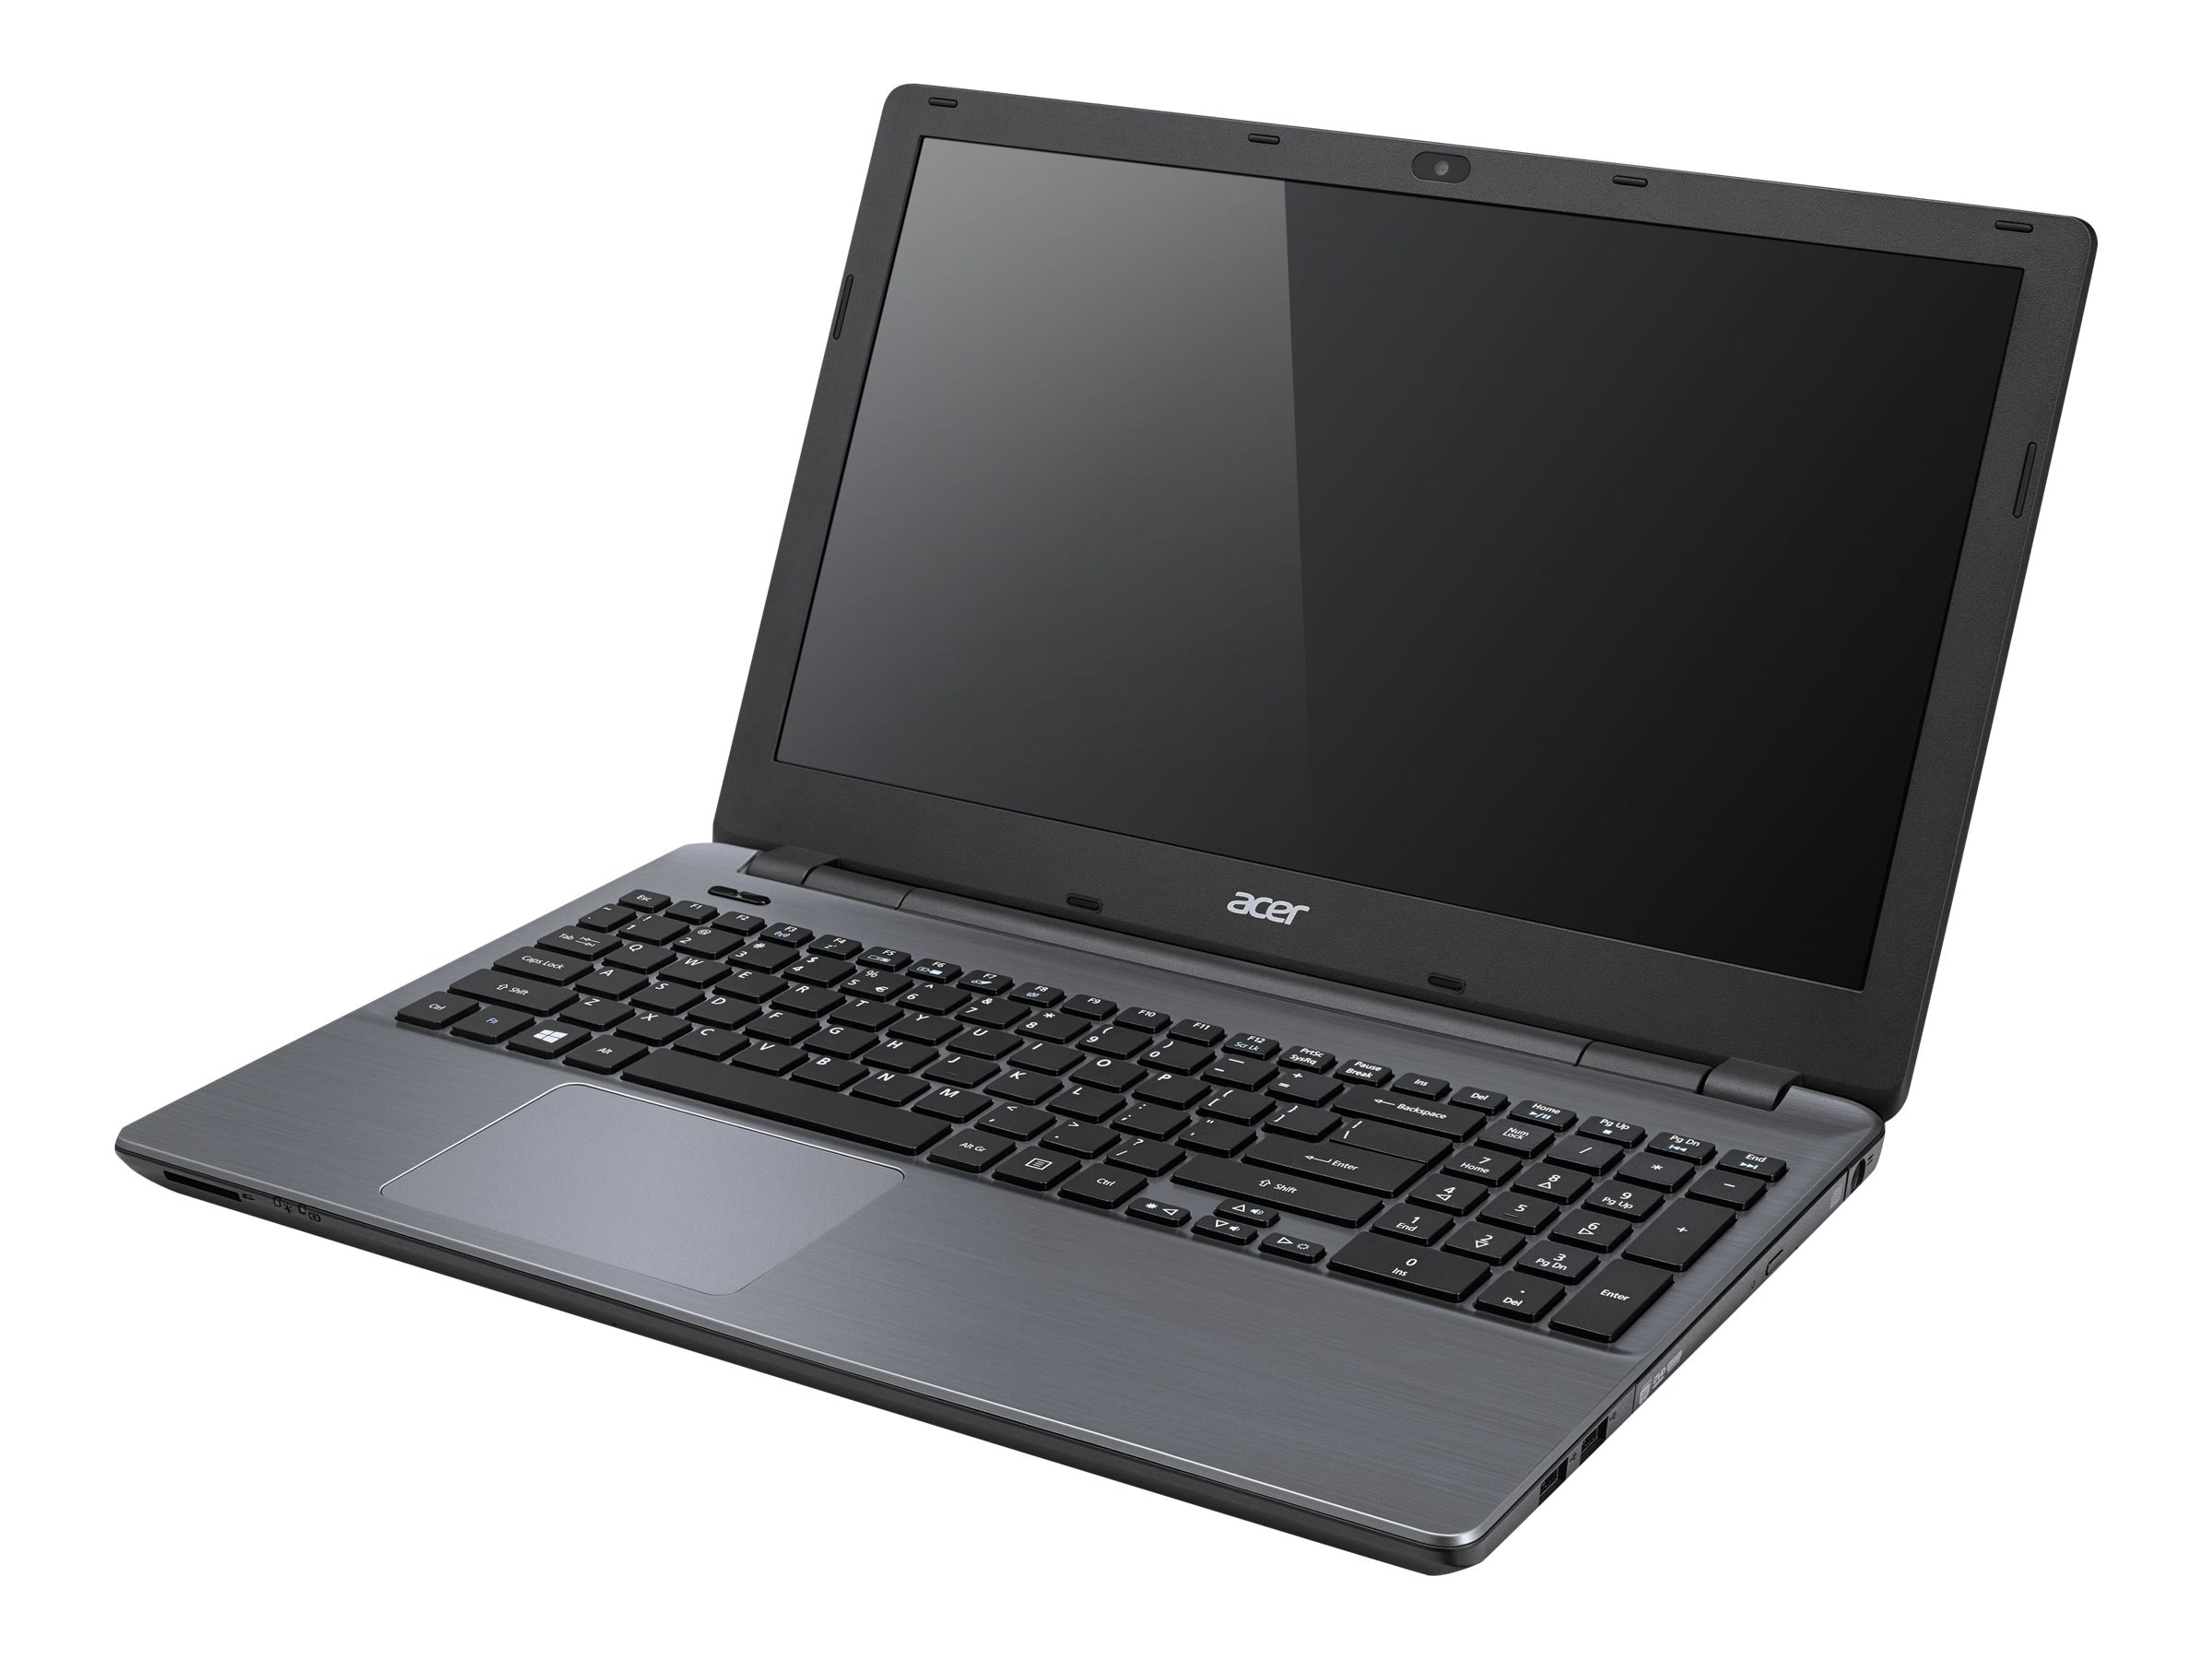 Acer Aspire E5-531-P4SQ : 1.4GHz Pentium 15.6in display